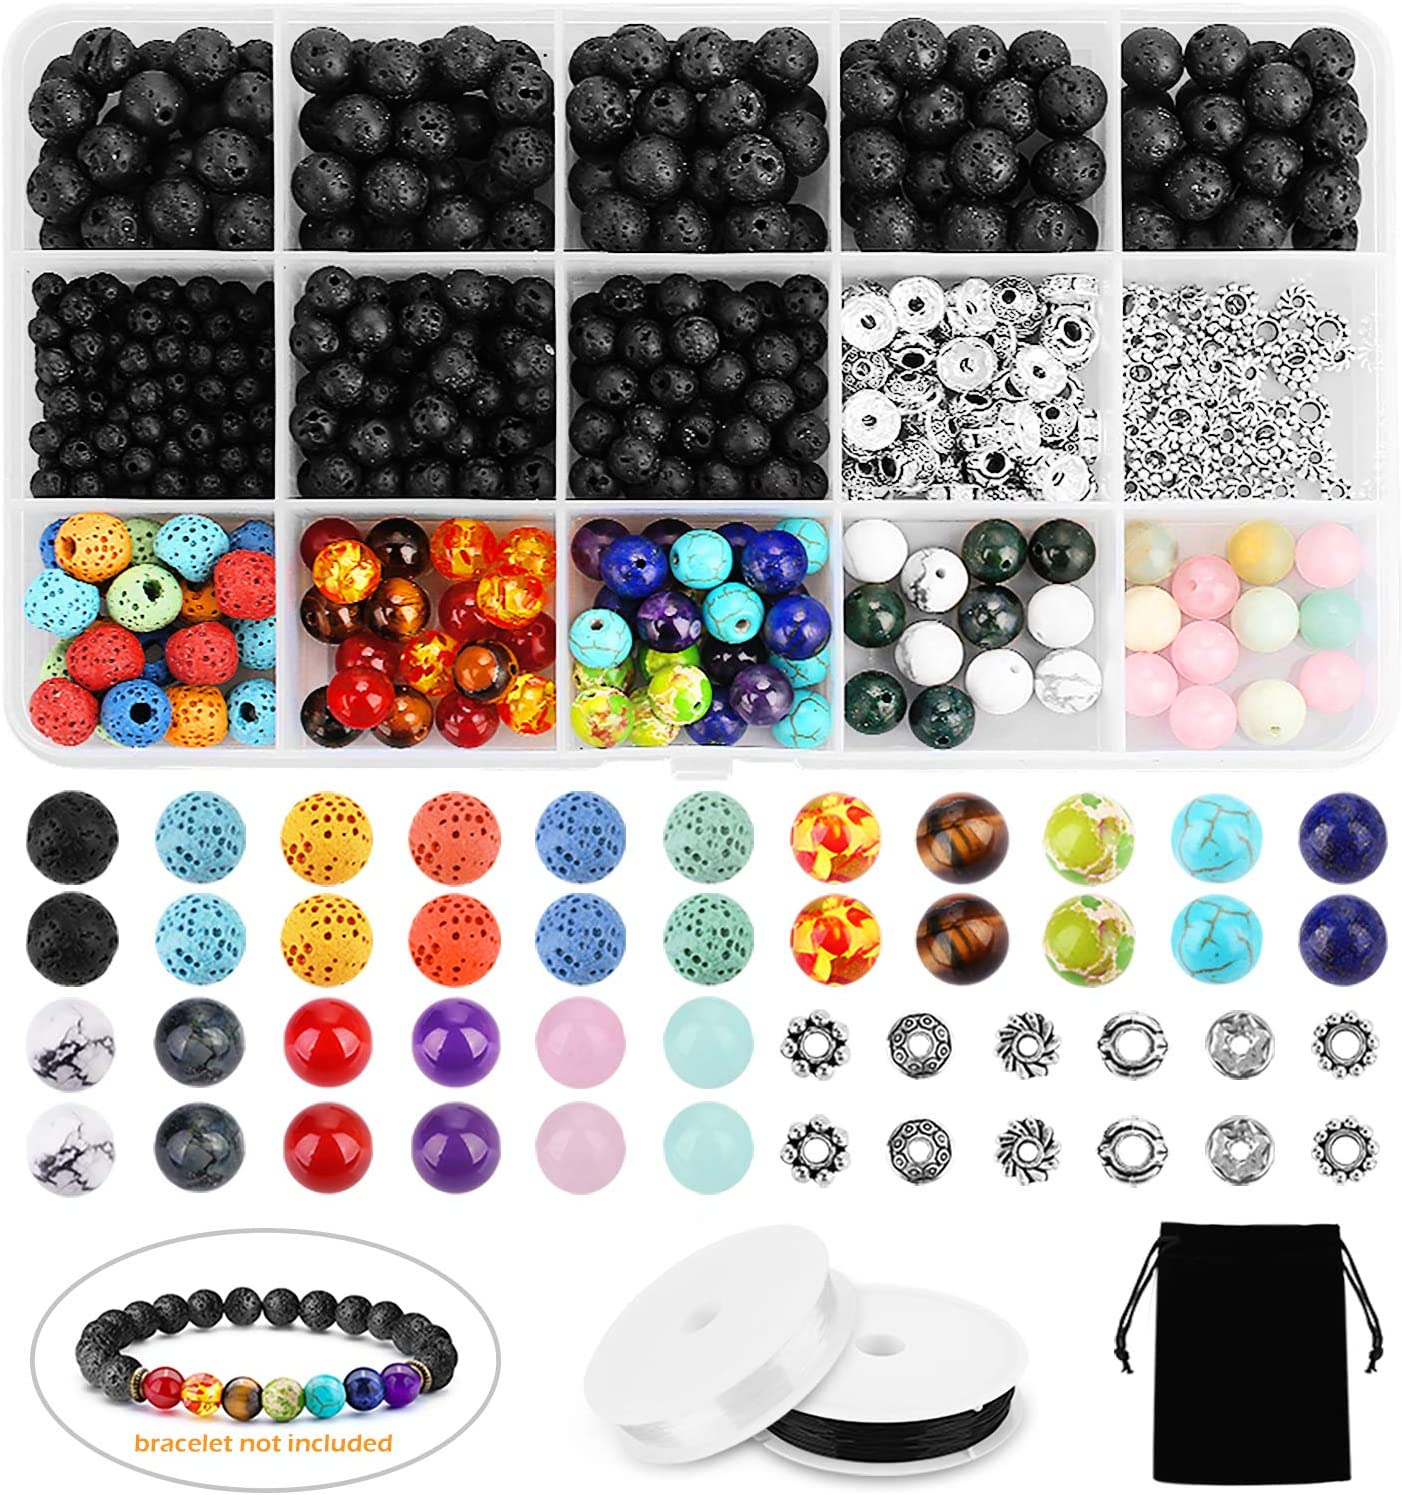 YBLNTEK 600 Pcs Chakra Beads Lava Beads Rock Stone Assorted Colored Volcanic Gemstone Beads Spacer Beads with 2 Beading Needles and 2 Roll Elastic Stretch String for Bracelet Jewelry Making